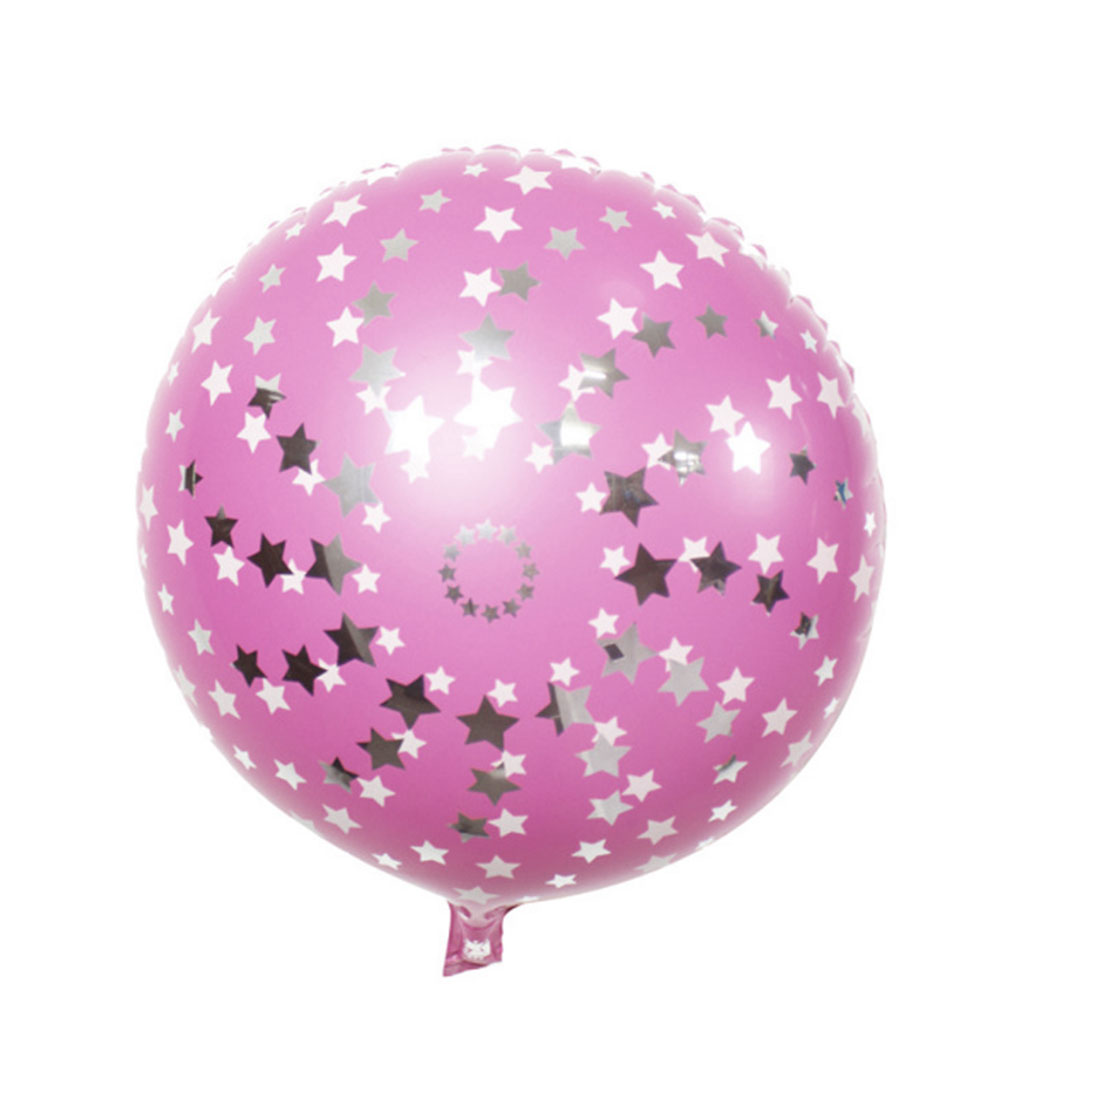 Unique Bargains Birthday Wedding Foil Star Pattern Round Inflation Balloon Pink 18 Inches 4pcs - image 1 de 4